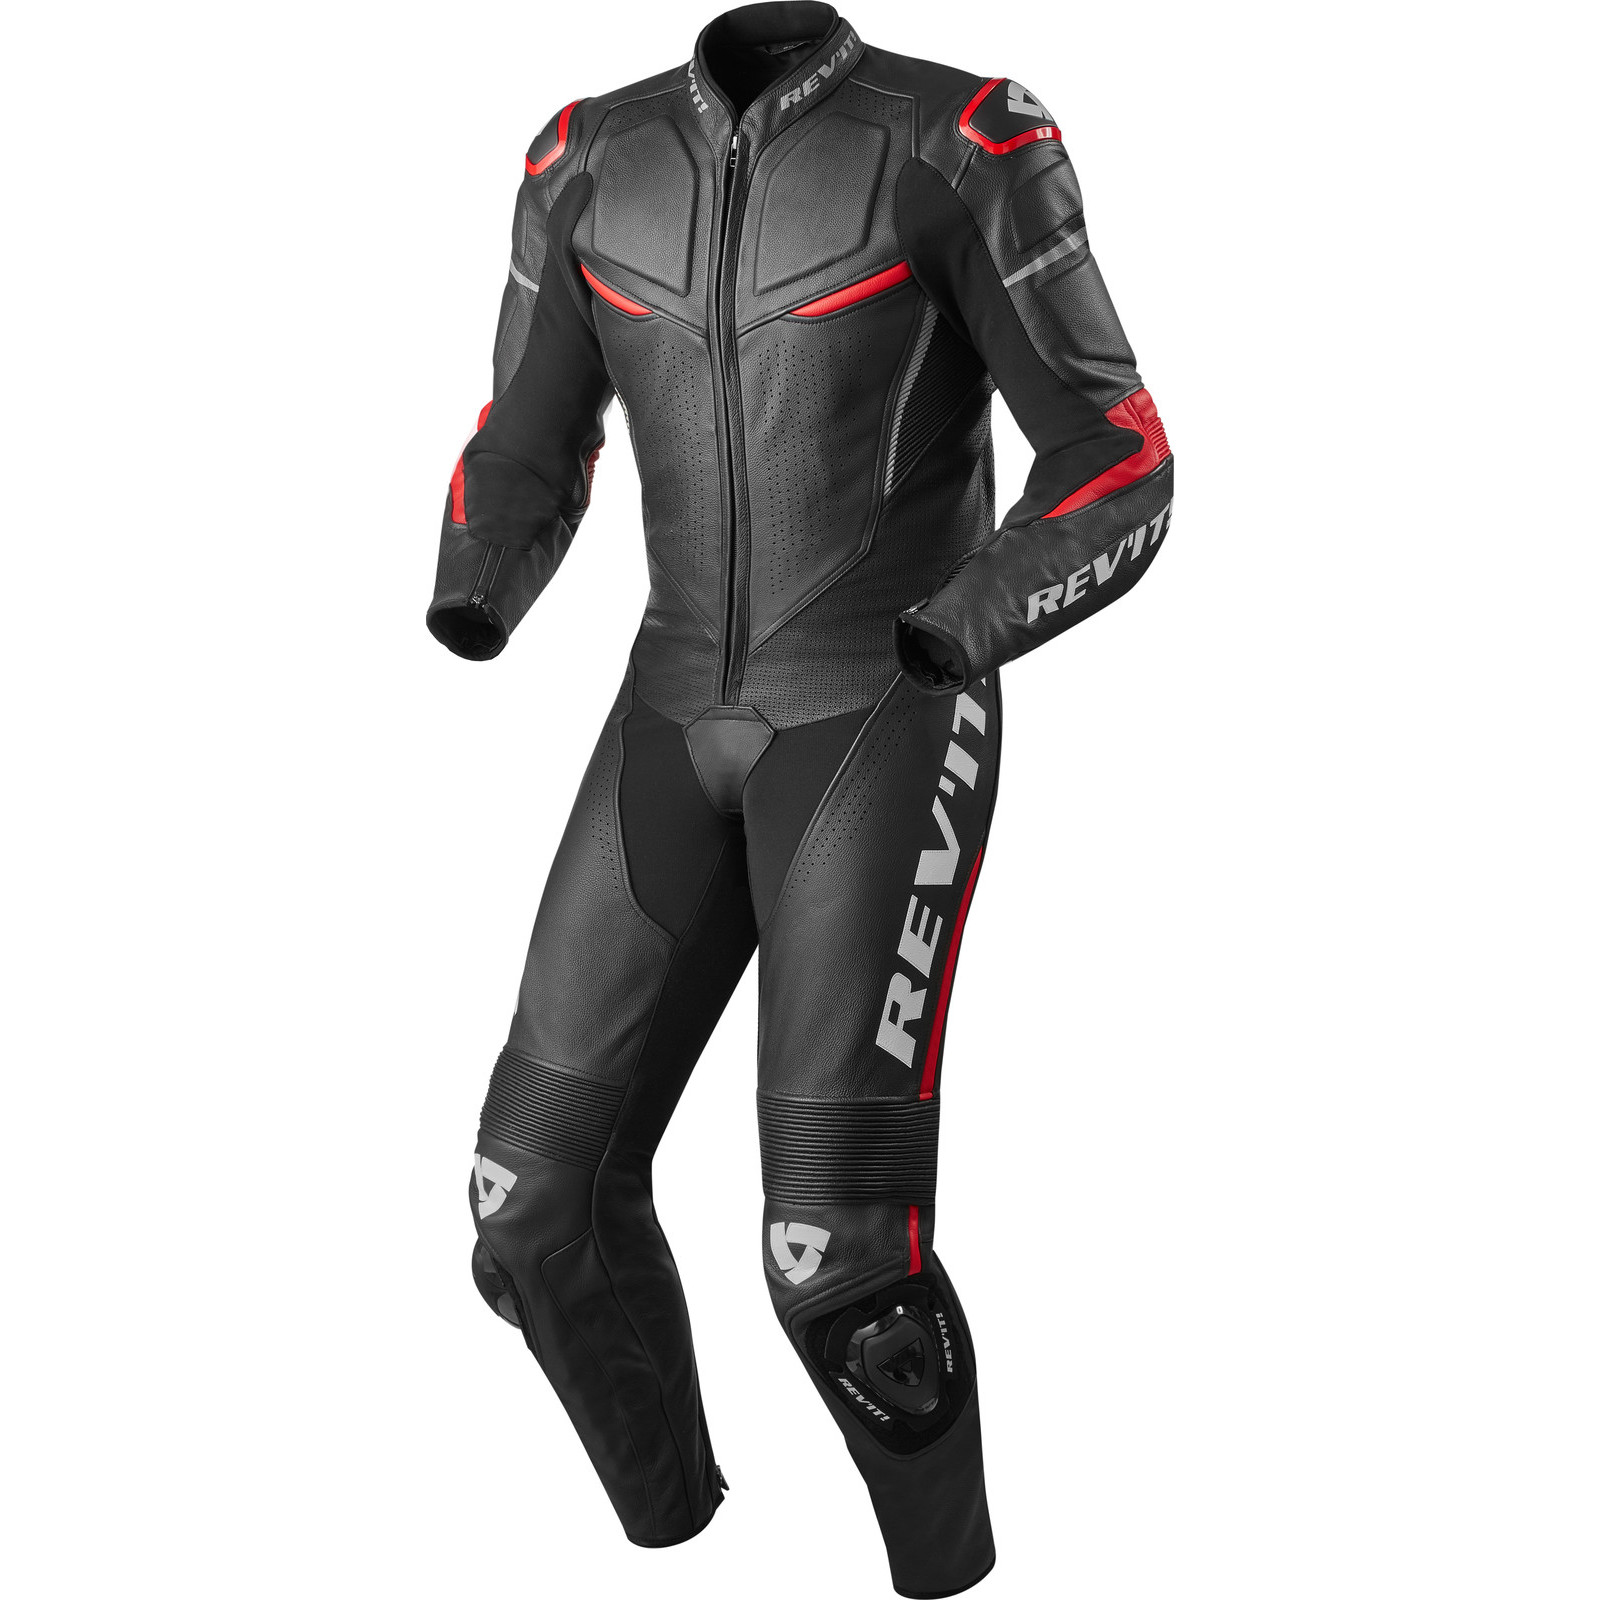 Choosing the right suit is no easy task, but thanks to a wide selection from top brands such as Dainese, Alpinestars, Spidi, REV'IT!, Bilt and Sedici, Cycle Gear has both one and two piece leather suits that offer the latest in protective technology, ergonomics and comfort.